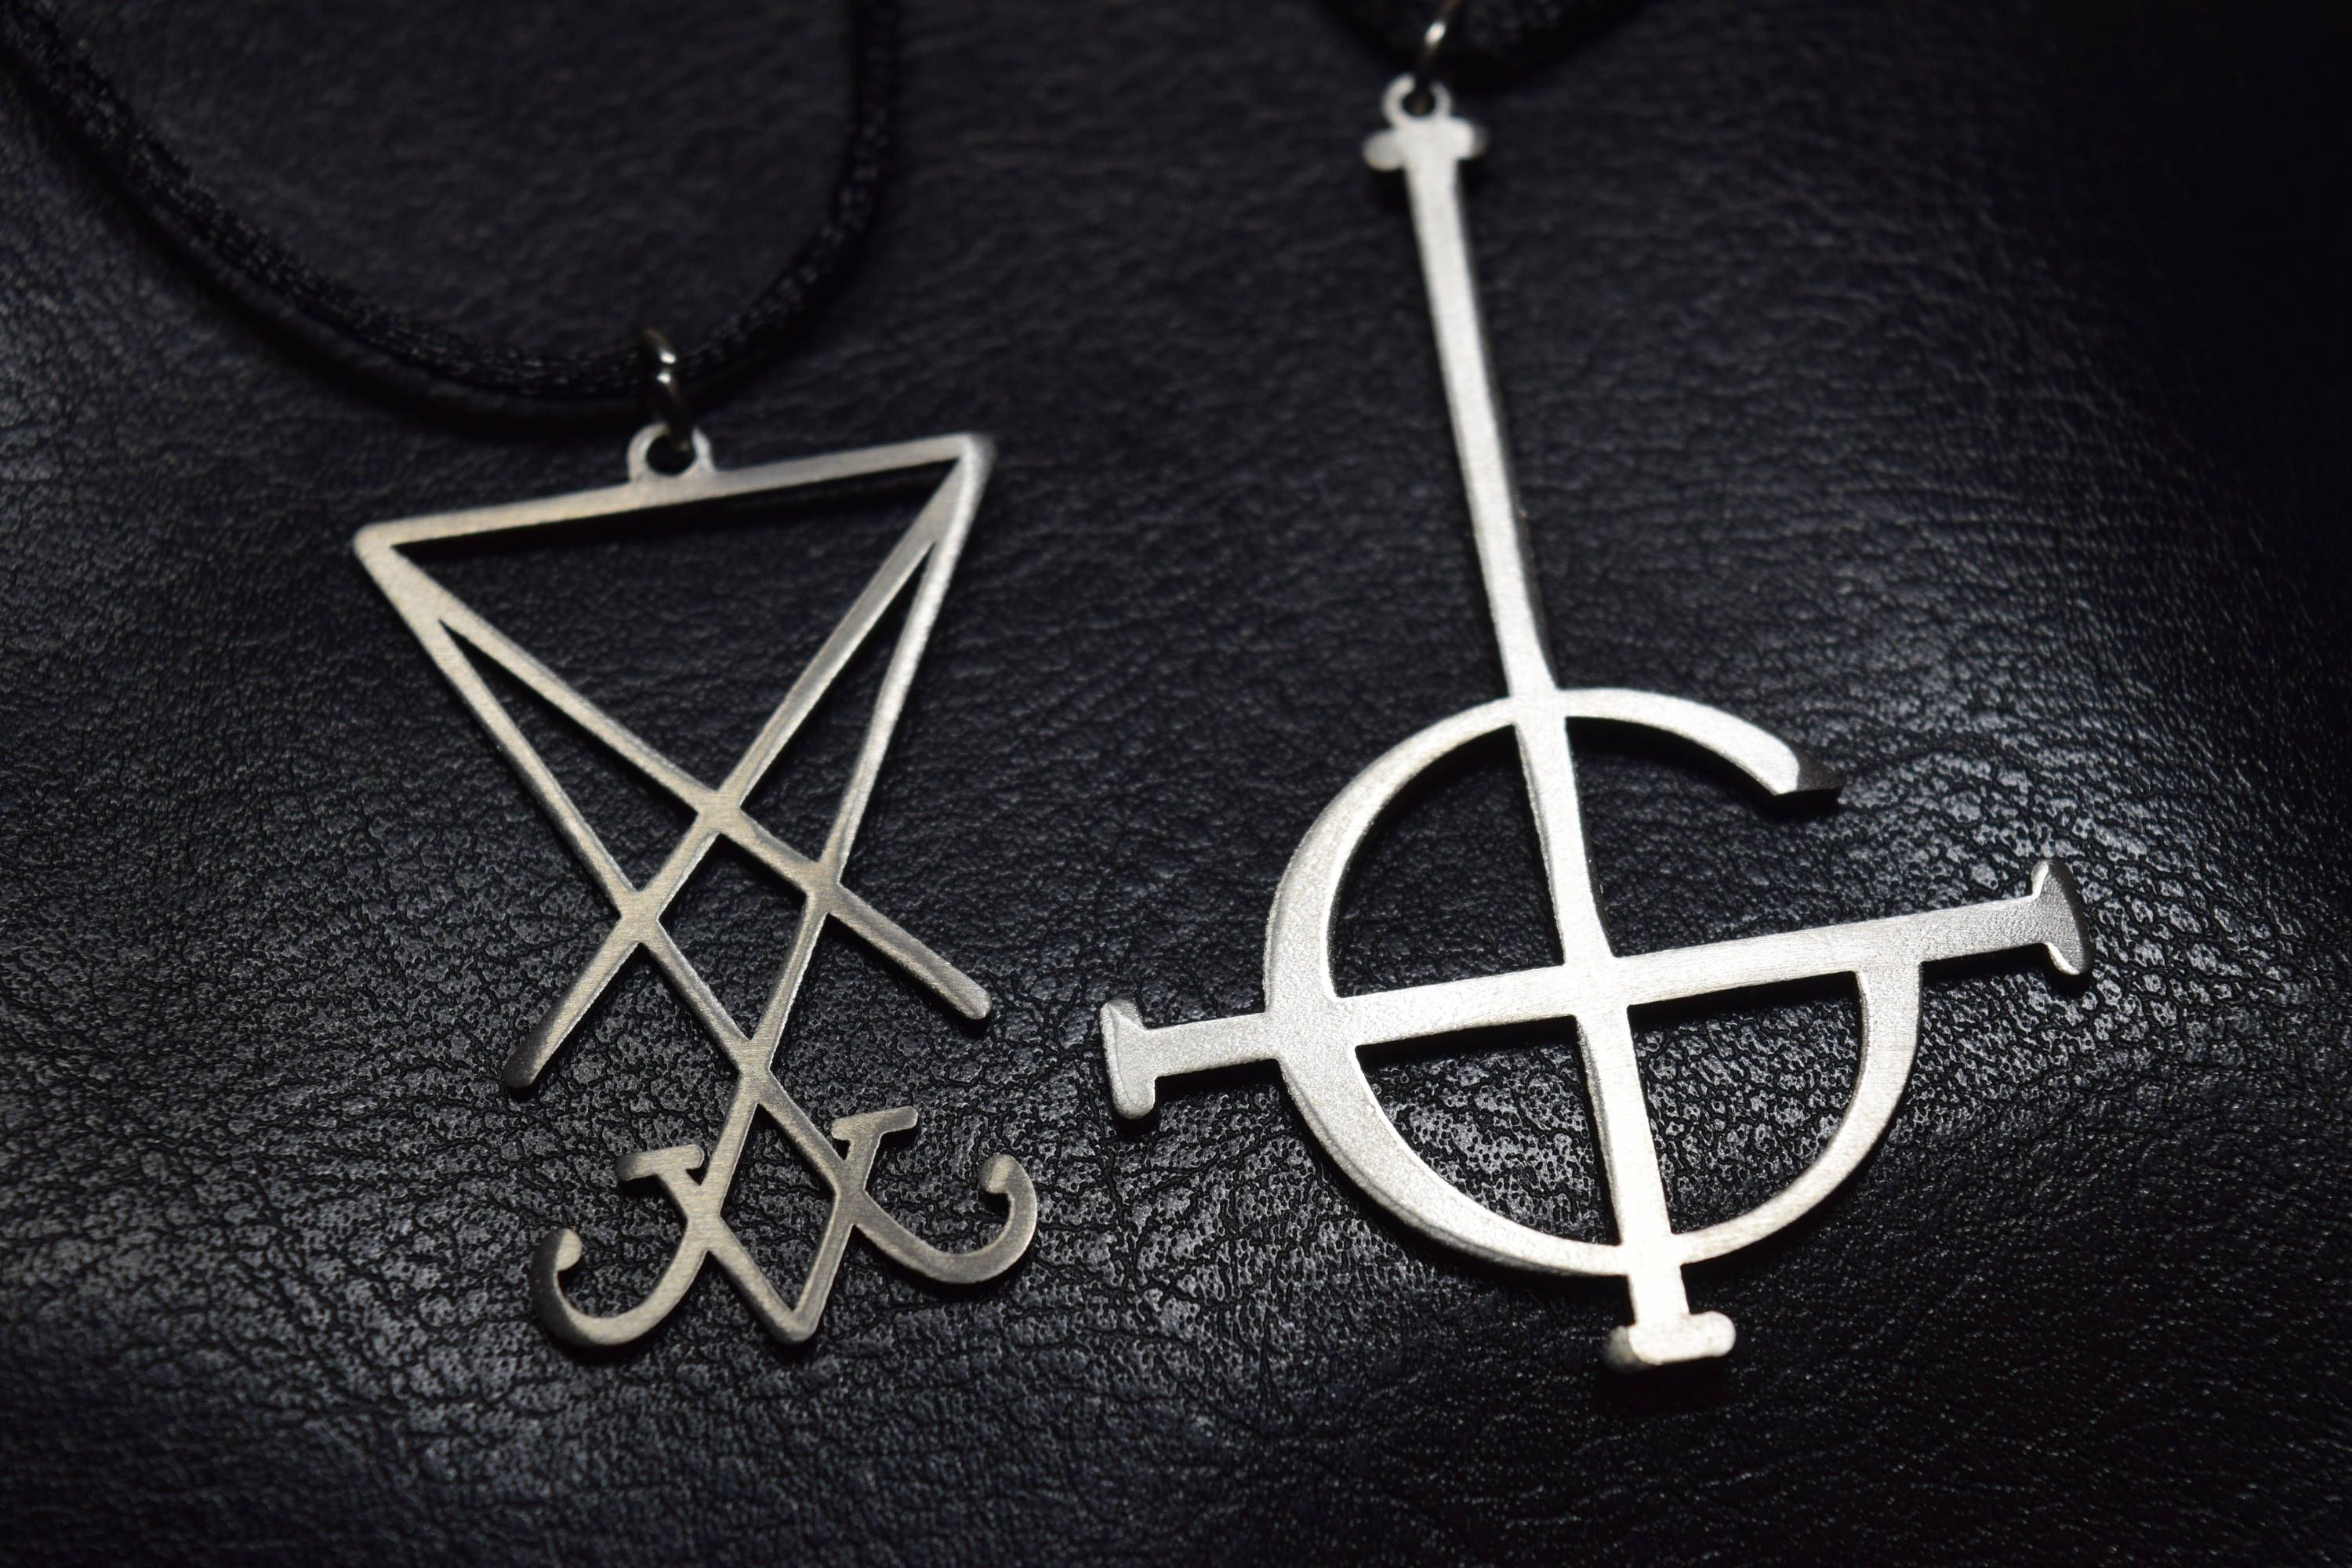 Grucifix sigil of lucifer grucifix ghost band charm sign medallion grucifix sigil of lucifer grucifix ghost band charm sign medallion pendant satanic symbol jewelry seal of satan necklace logo nameless ghoul biocorpaavc